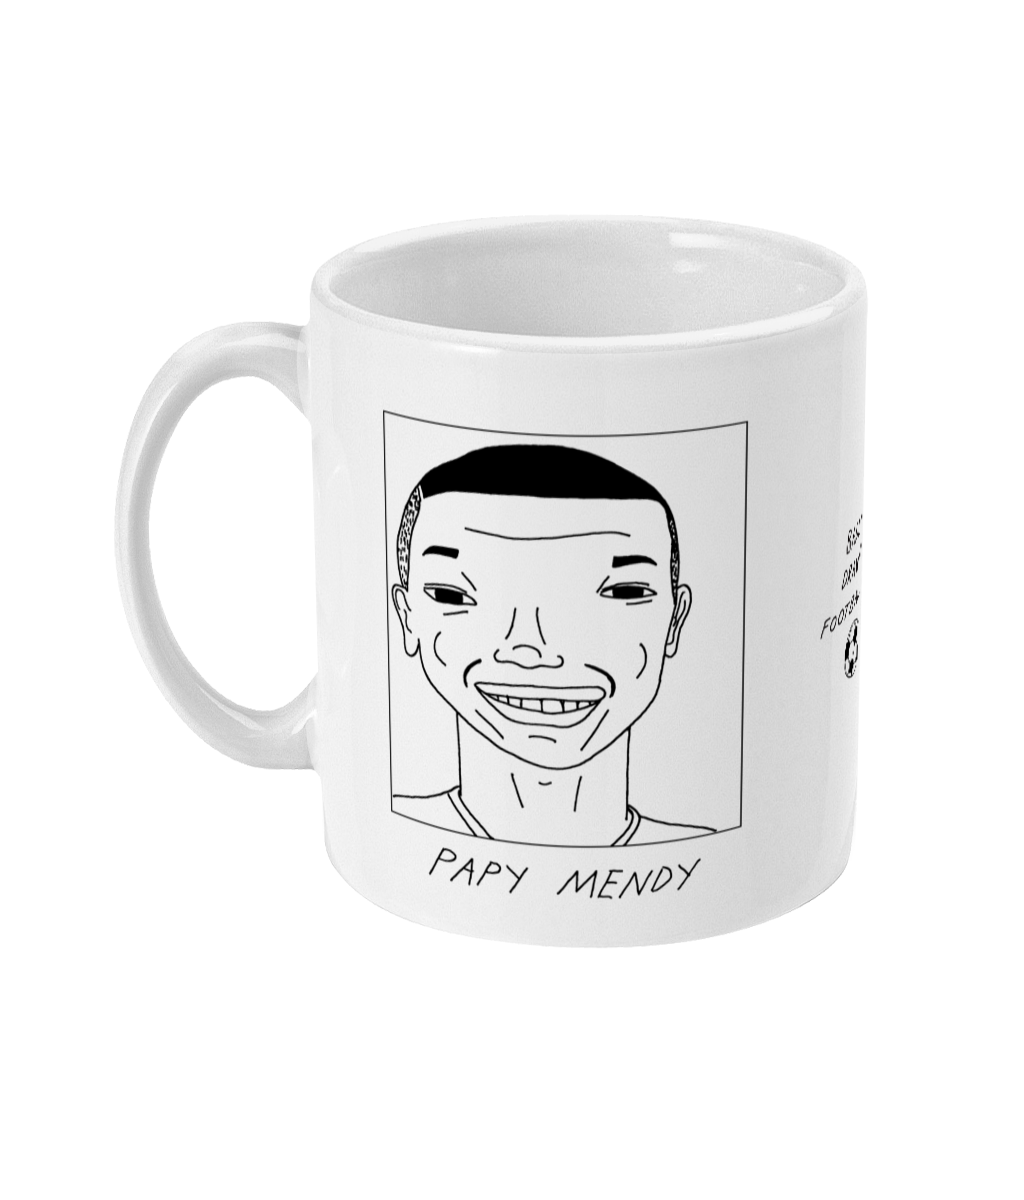 Badly Drawn Footballers Mug - Papy Mendy